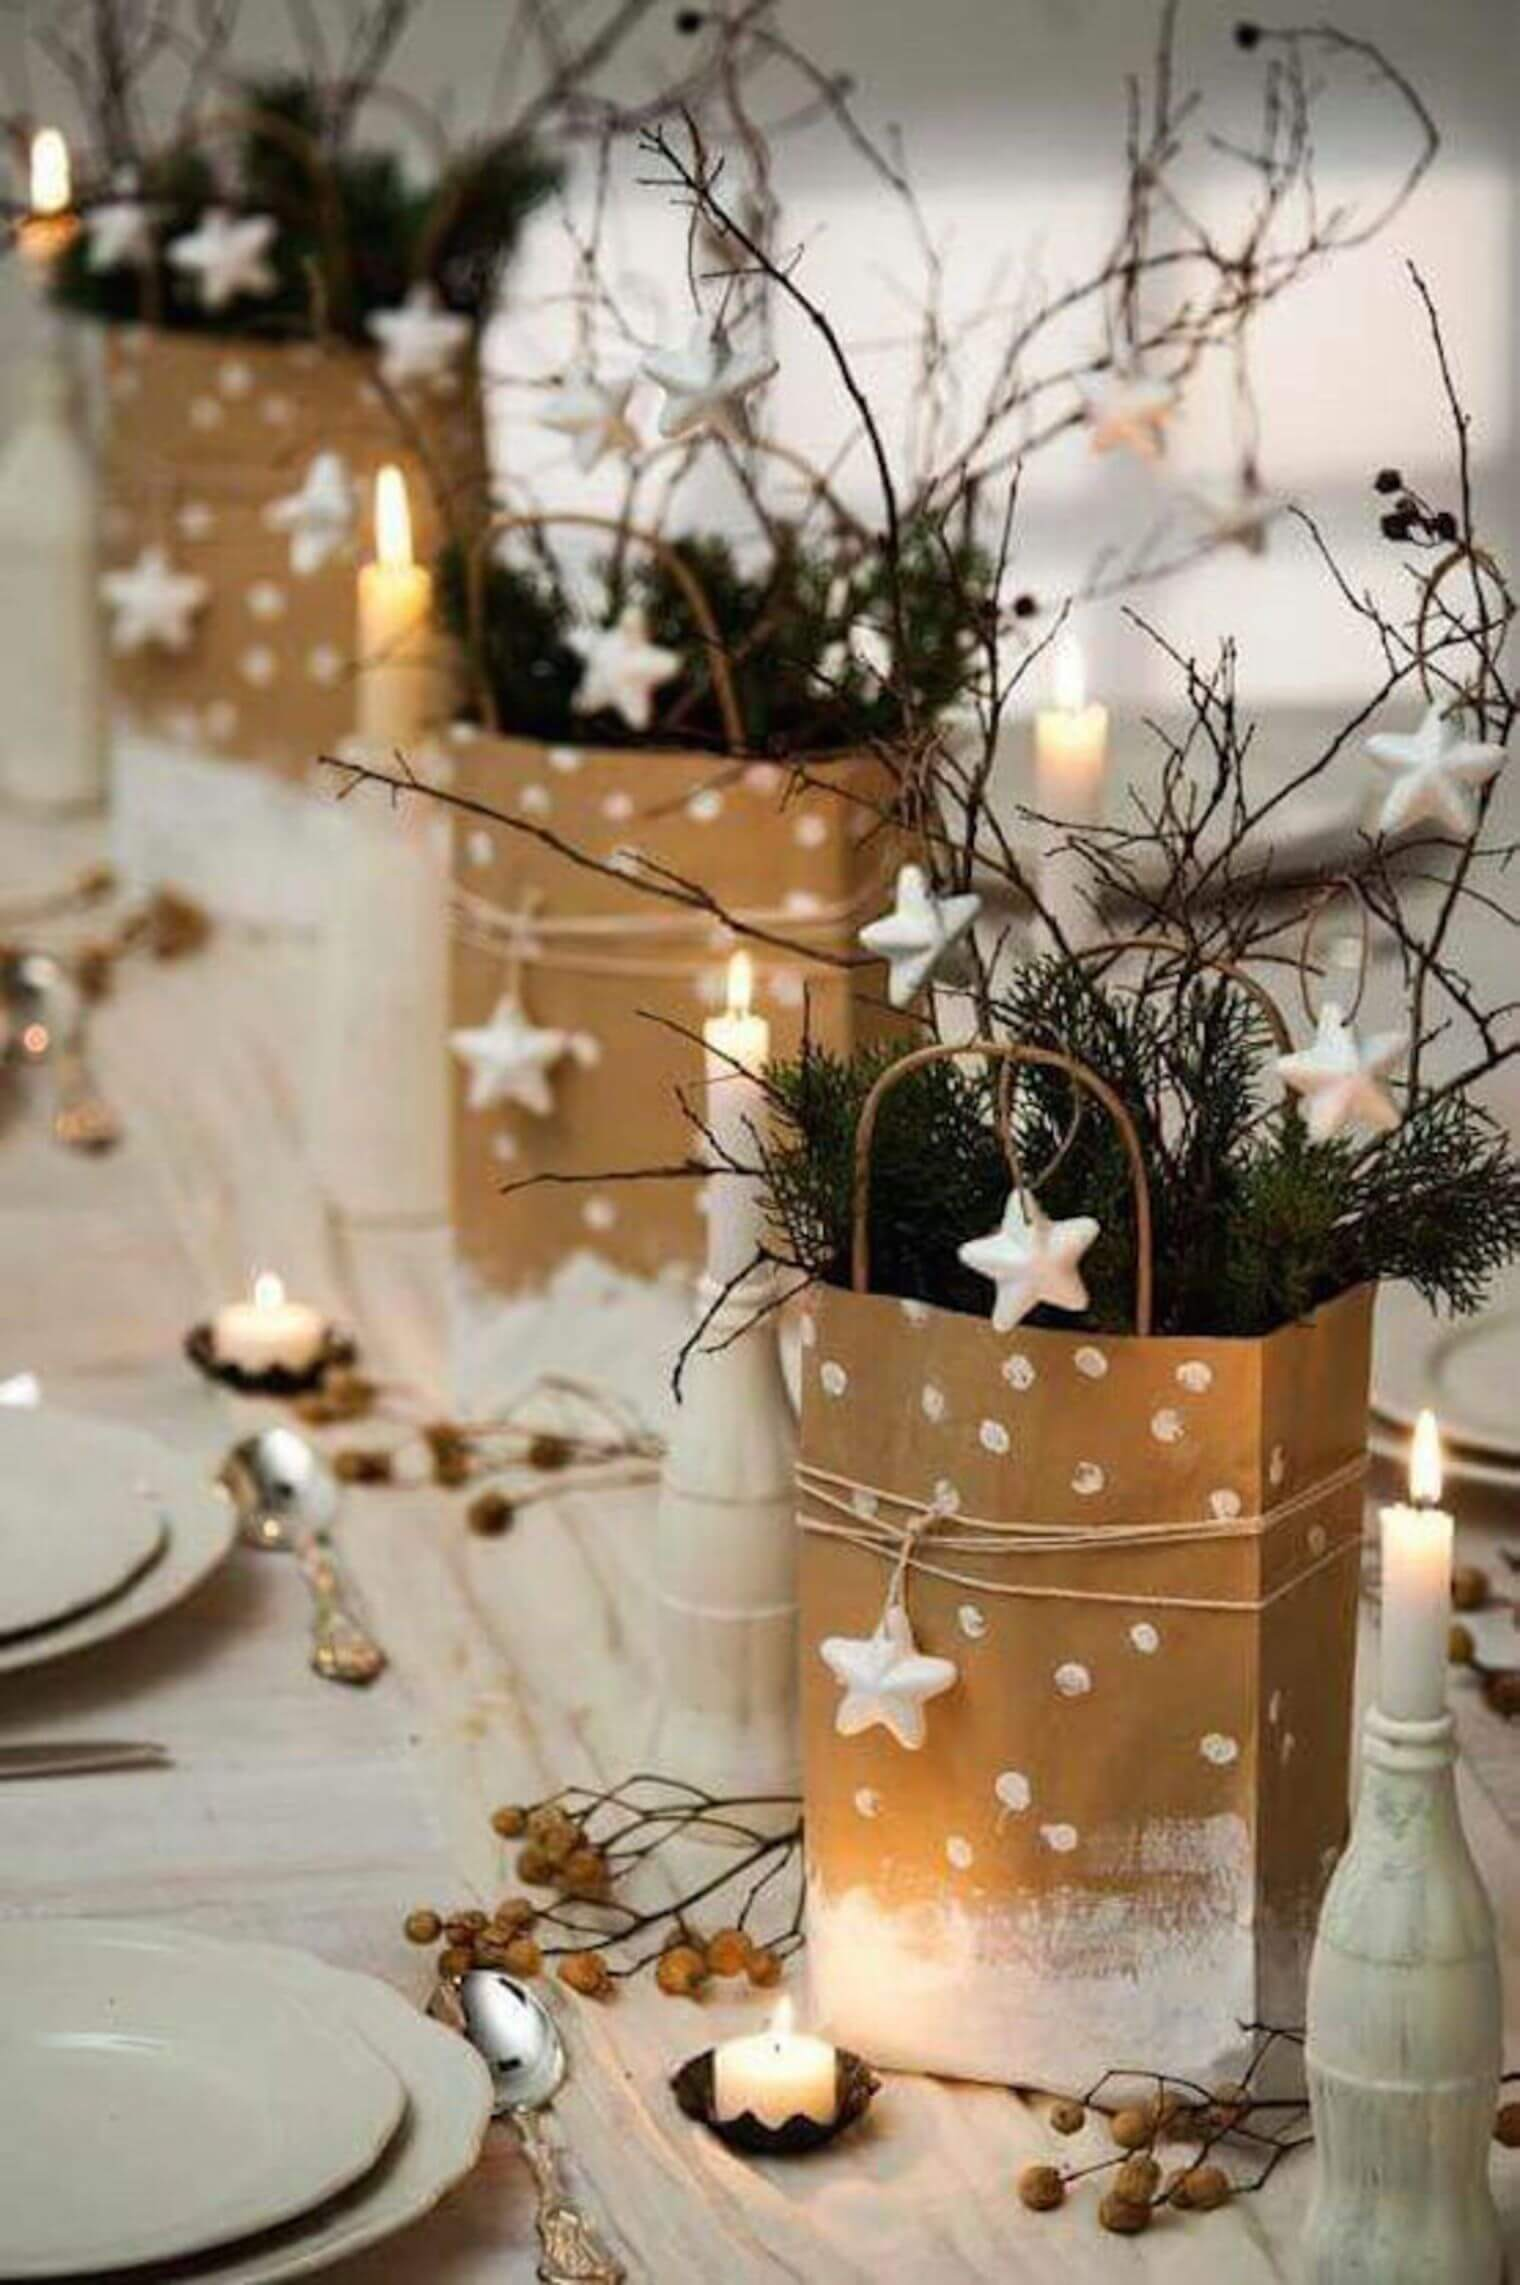 Best diy christmas centerpieces ideas and designs for